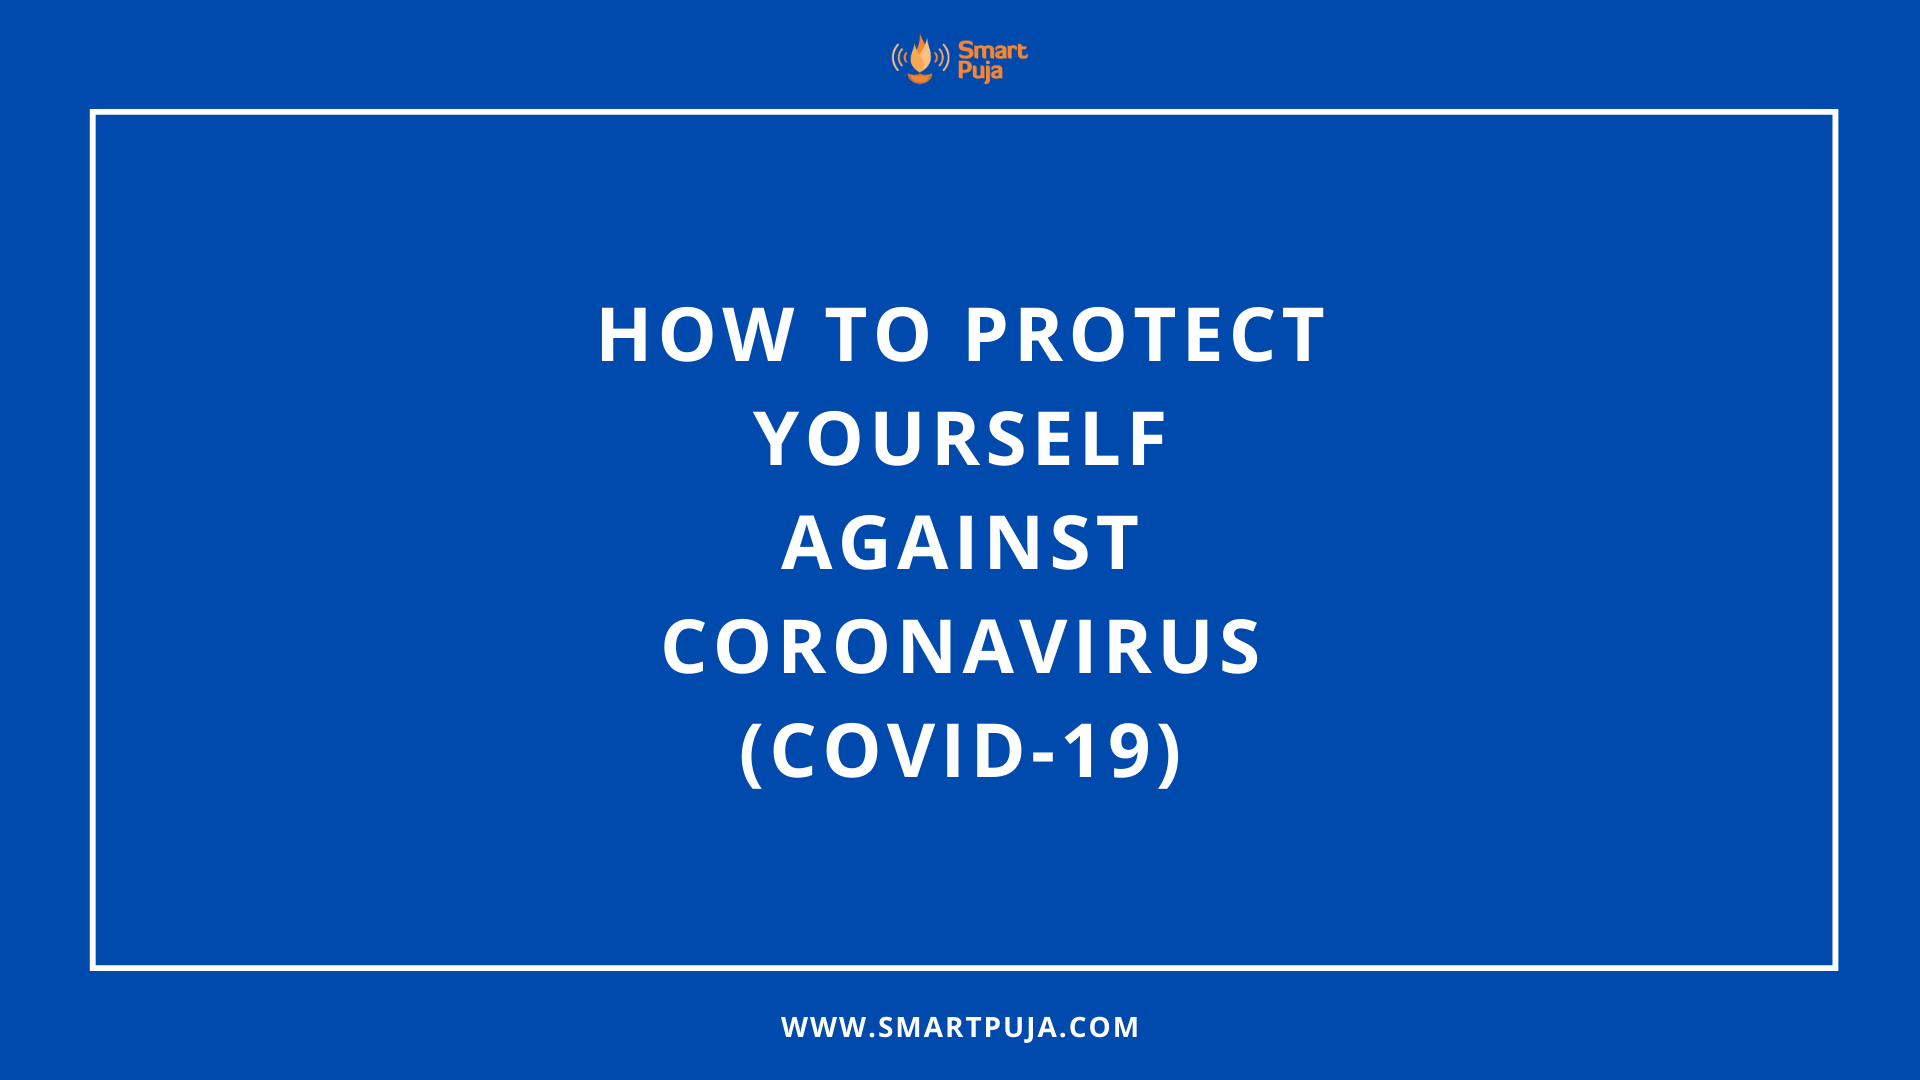 coronavirus awareness - smartpuja.com